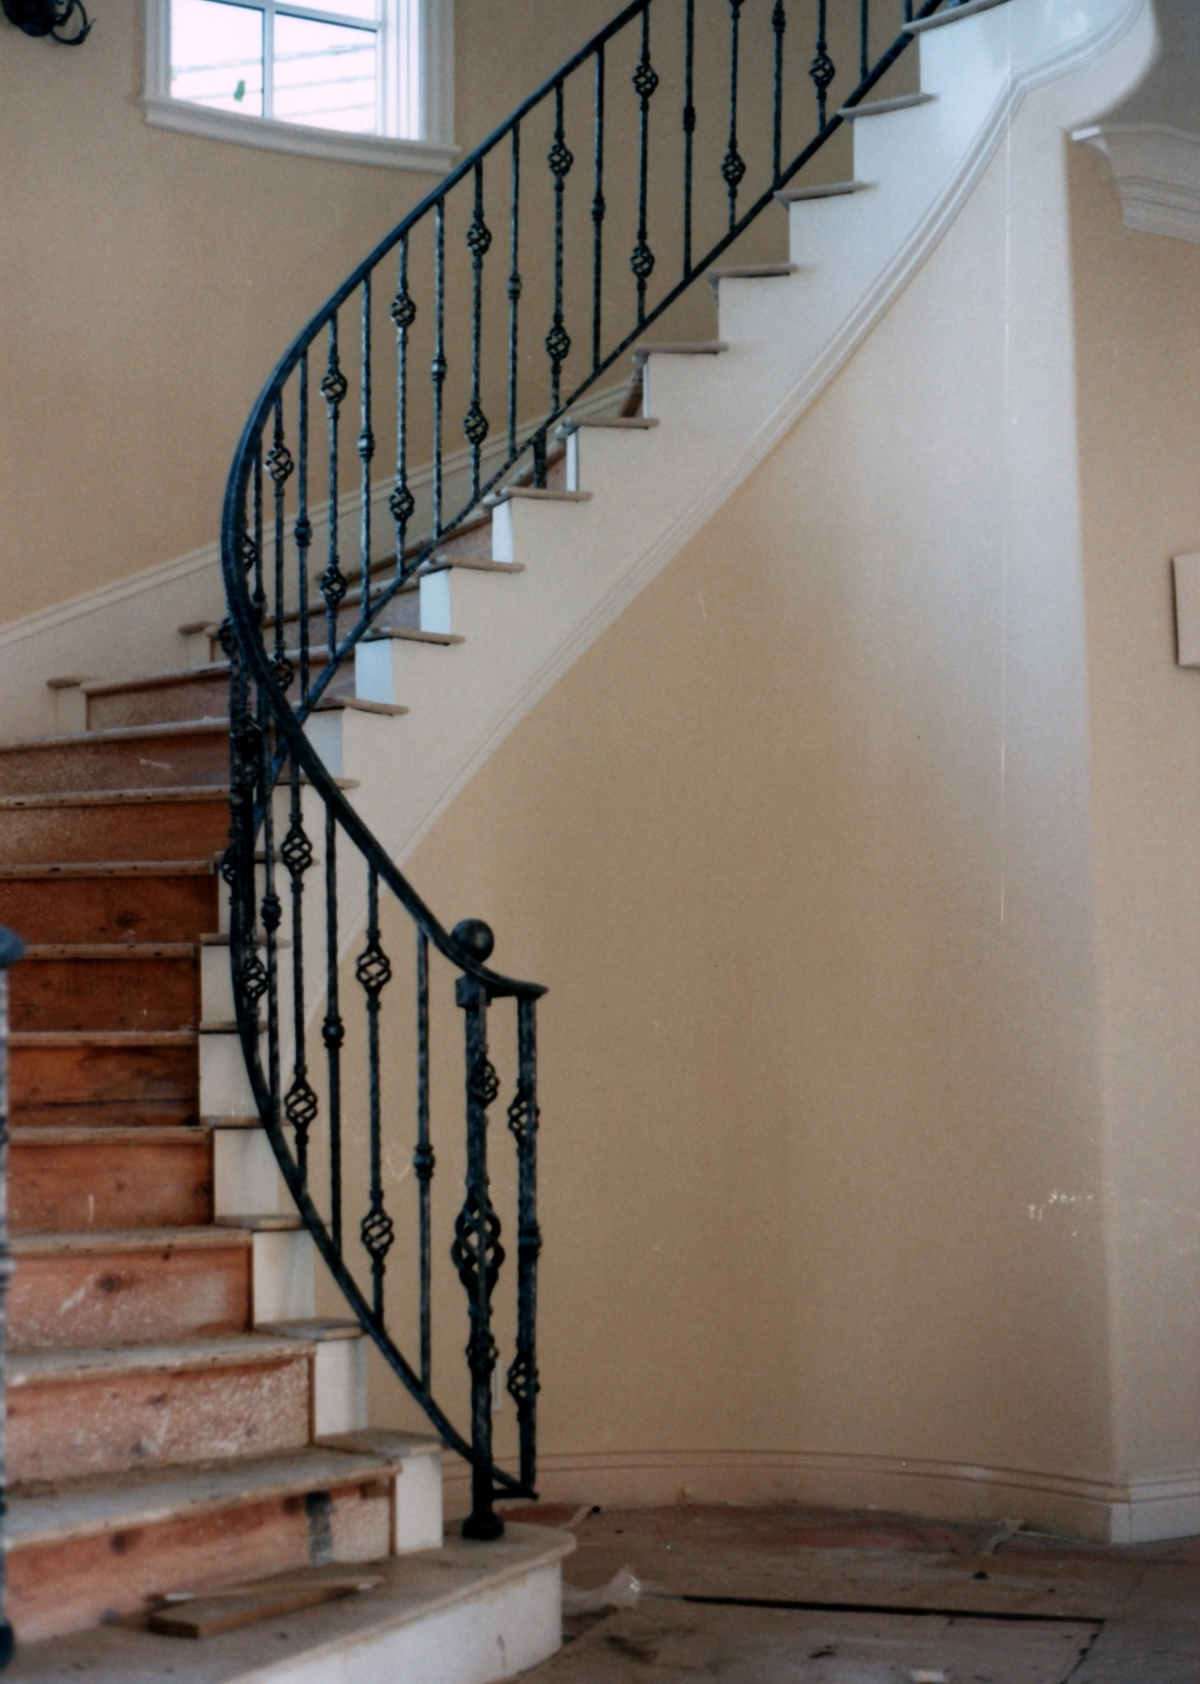 stairrailingcurved0004